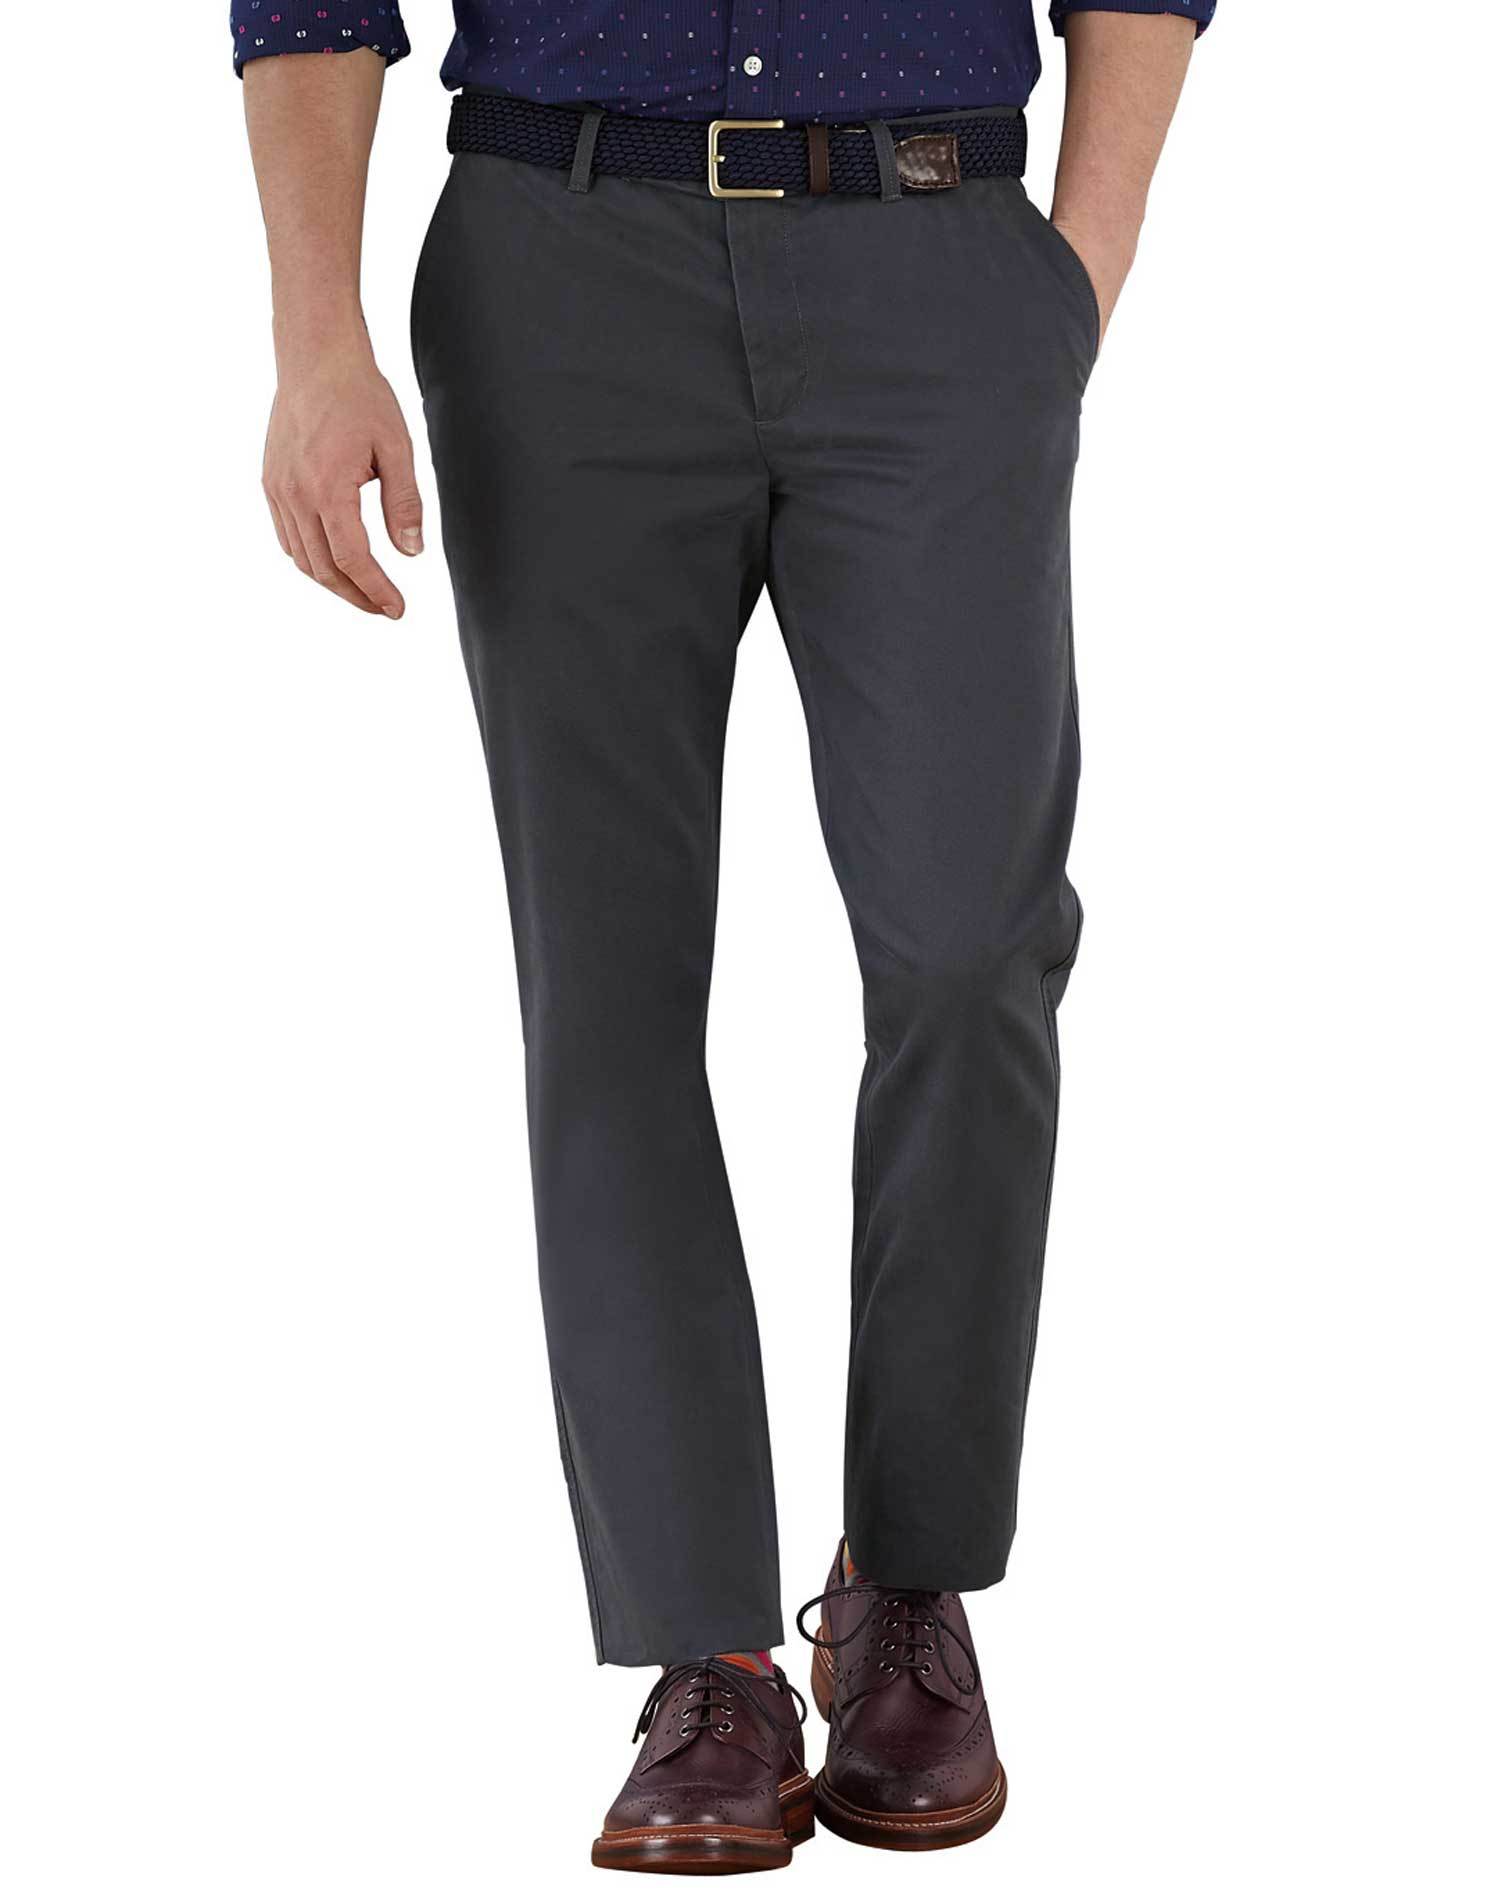 Charcoal Extra Slim Fit Flat Front Cotton Chino Trousers Size W34 L29 by Charles Tyrwhitt